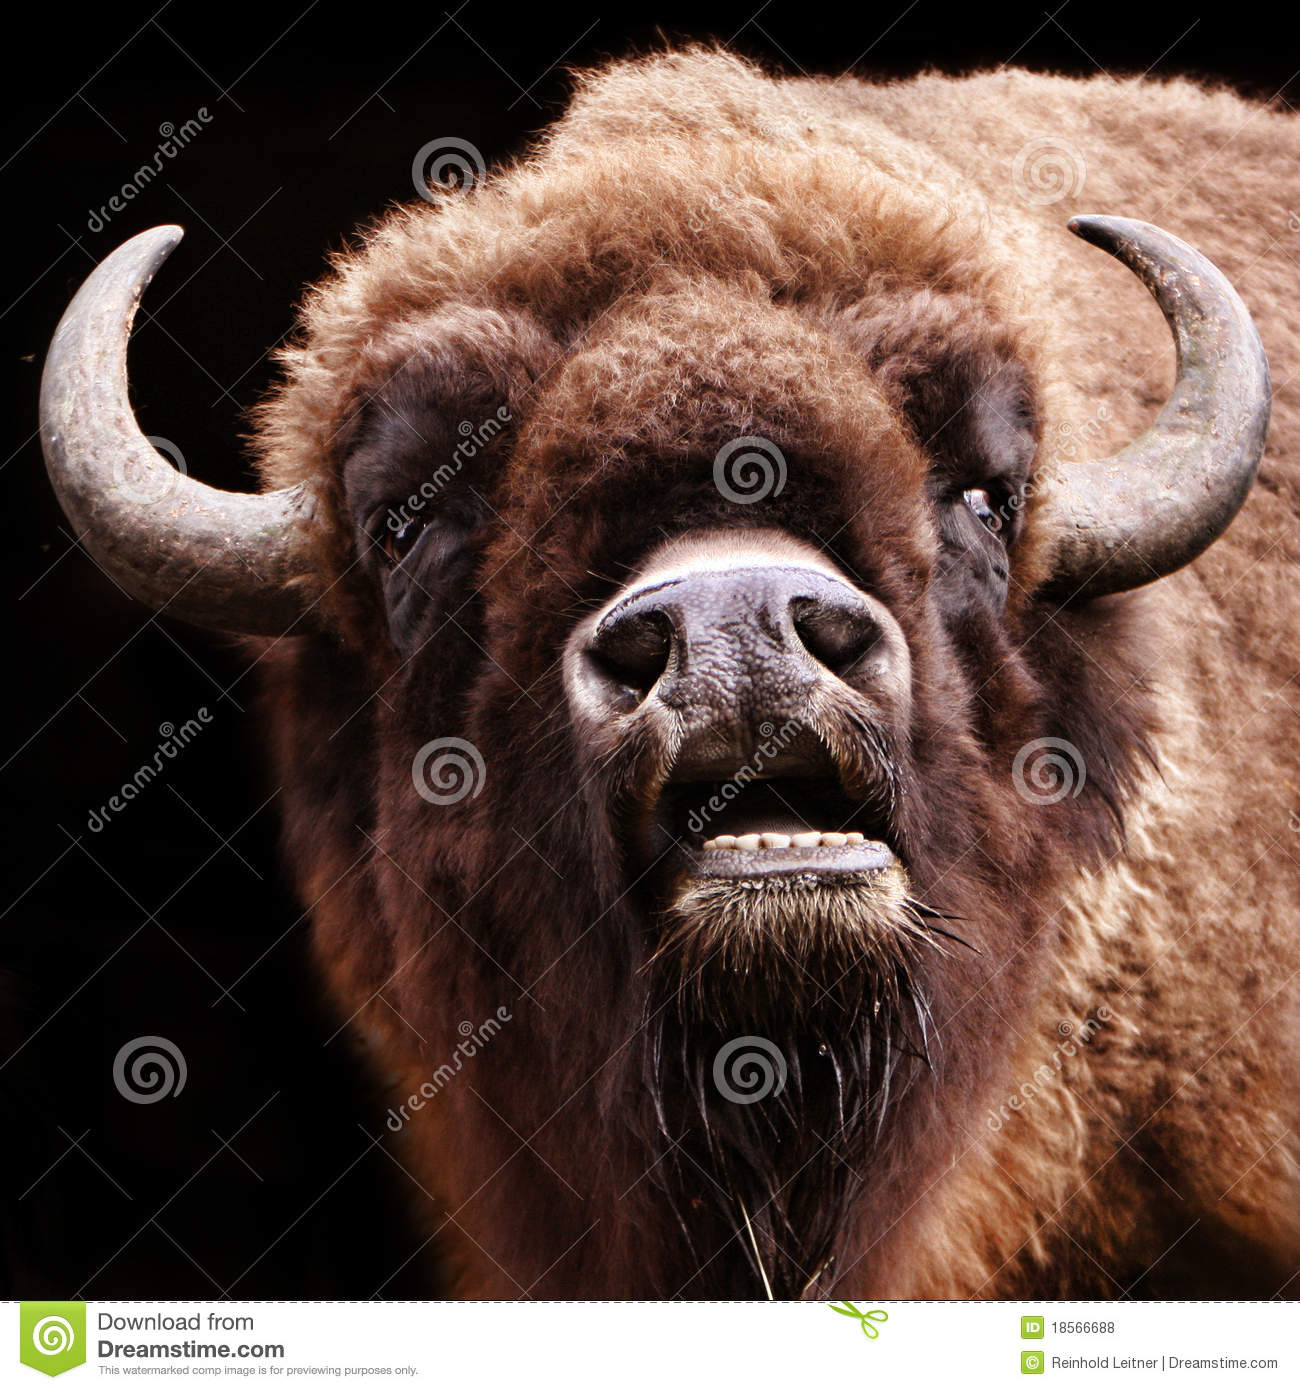 a buffalo common metaphor Freshman highschool metaphors a buffalo common metaphor over the past few decades the high plains have consistently been losing its population so.